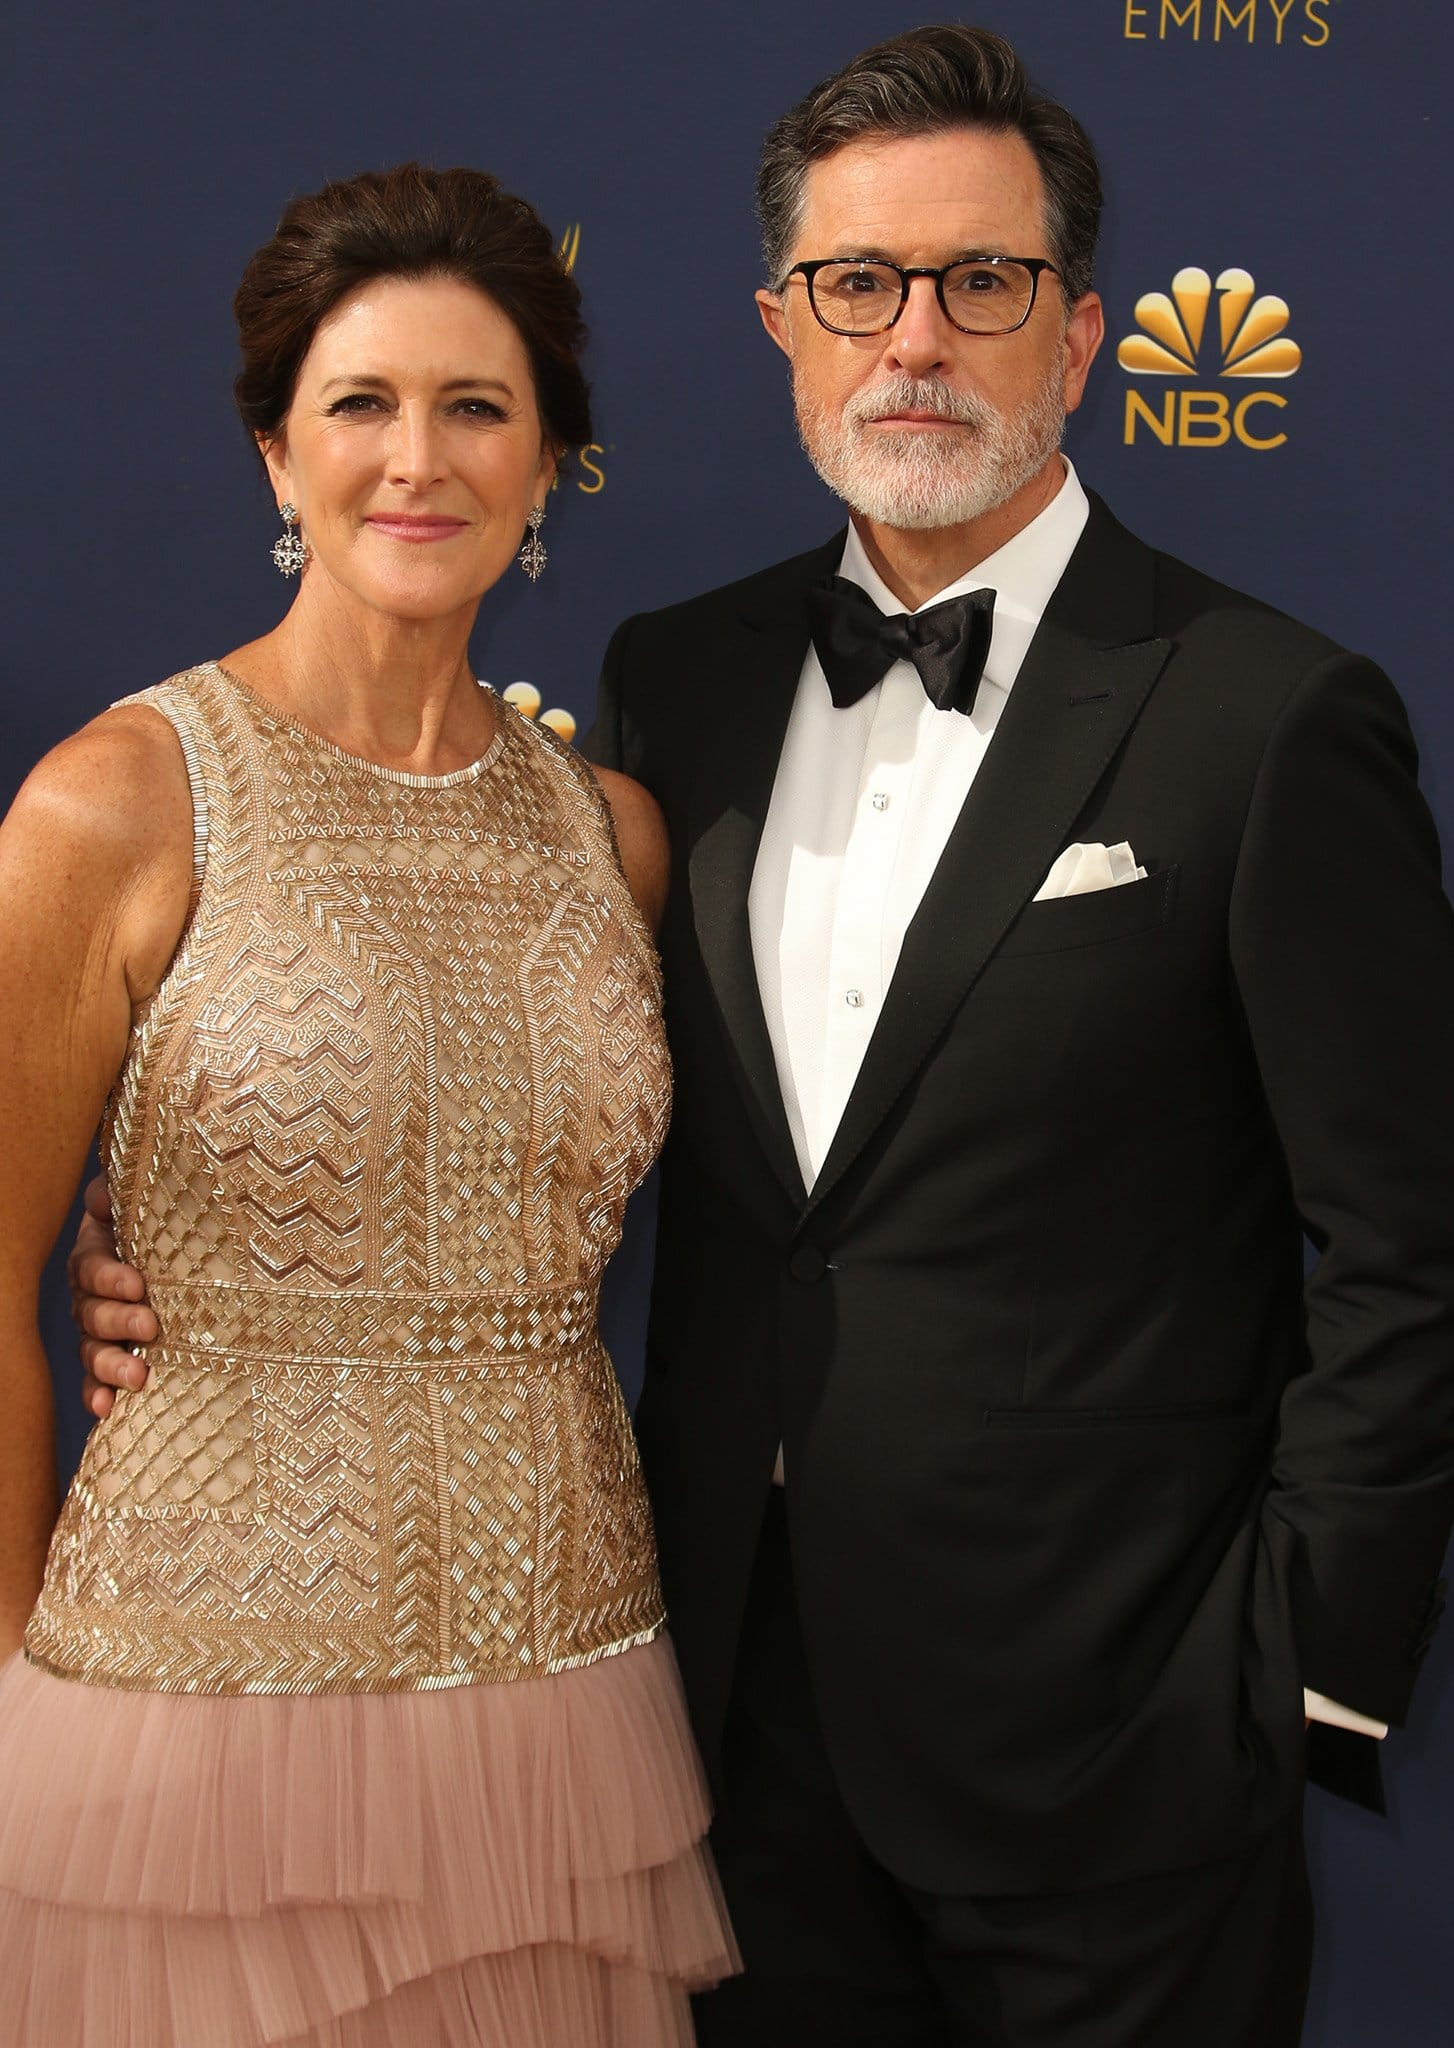 Evelyn McGee and Stephen Colbert at the 70th Primetime Emmy Awards in Los Angeles on September 17, 2018